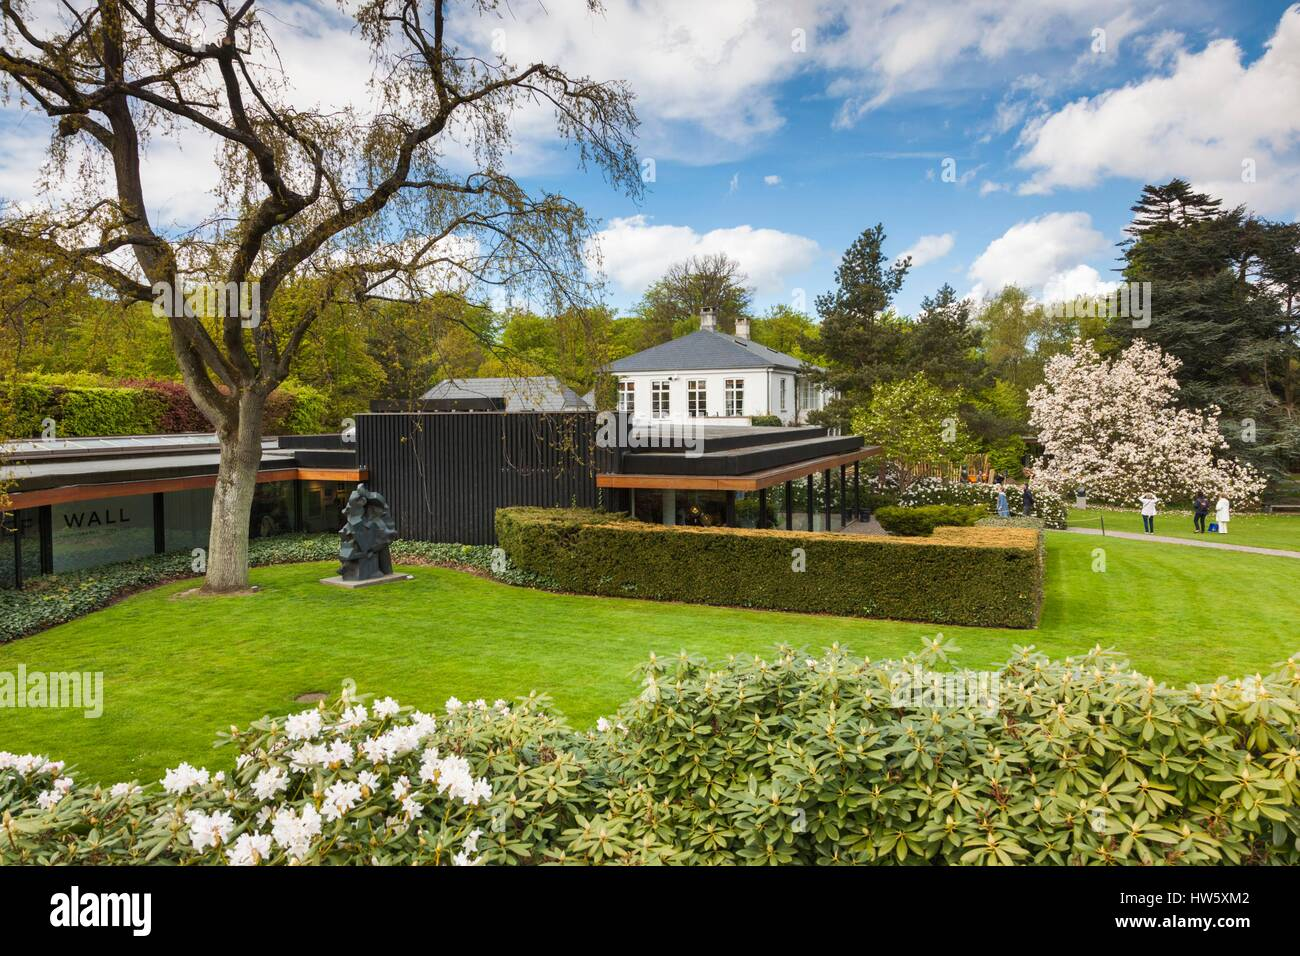 Denmark, Zealand, Humlebaek, Louisiana Museum of Modern Art, sculpture garden - Stock Image